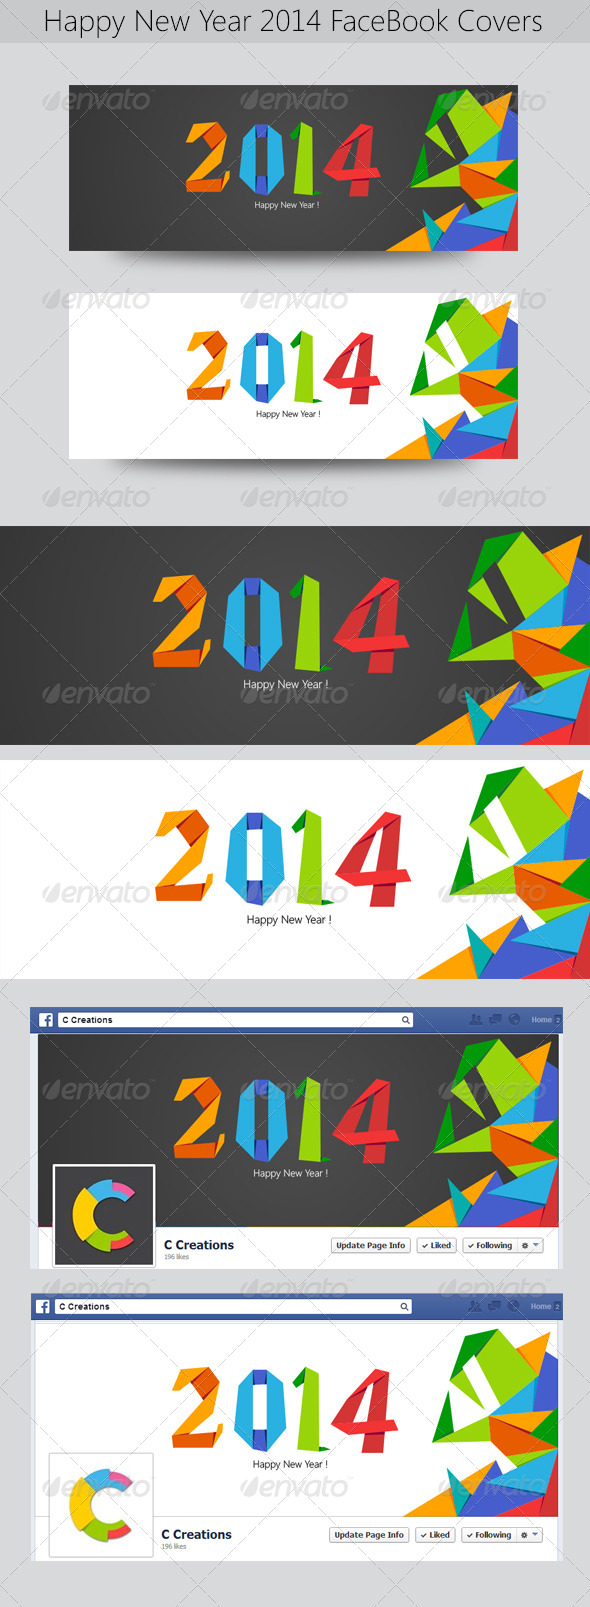 GraphicRiver Happy New Year FB Timeline 6498766